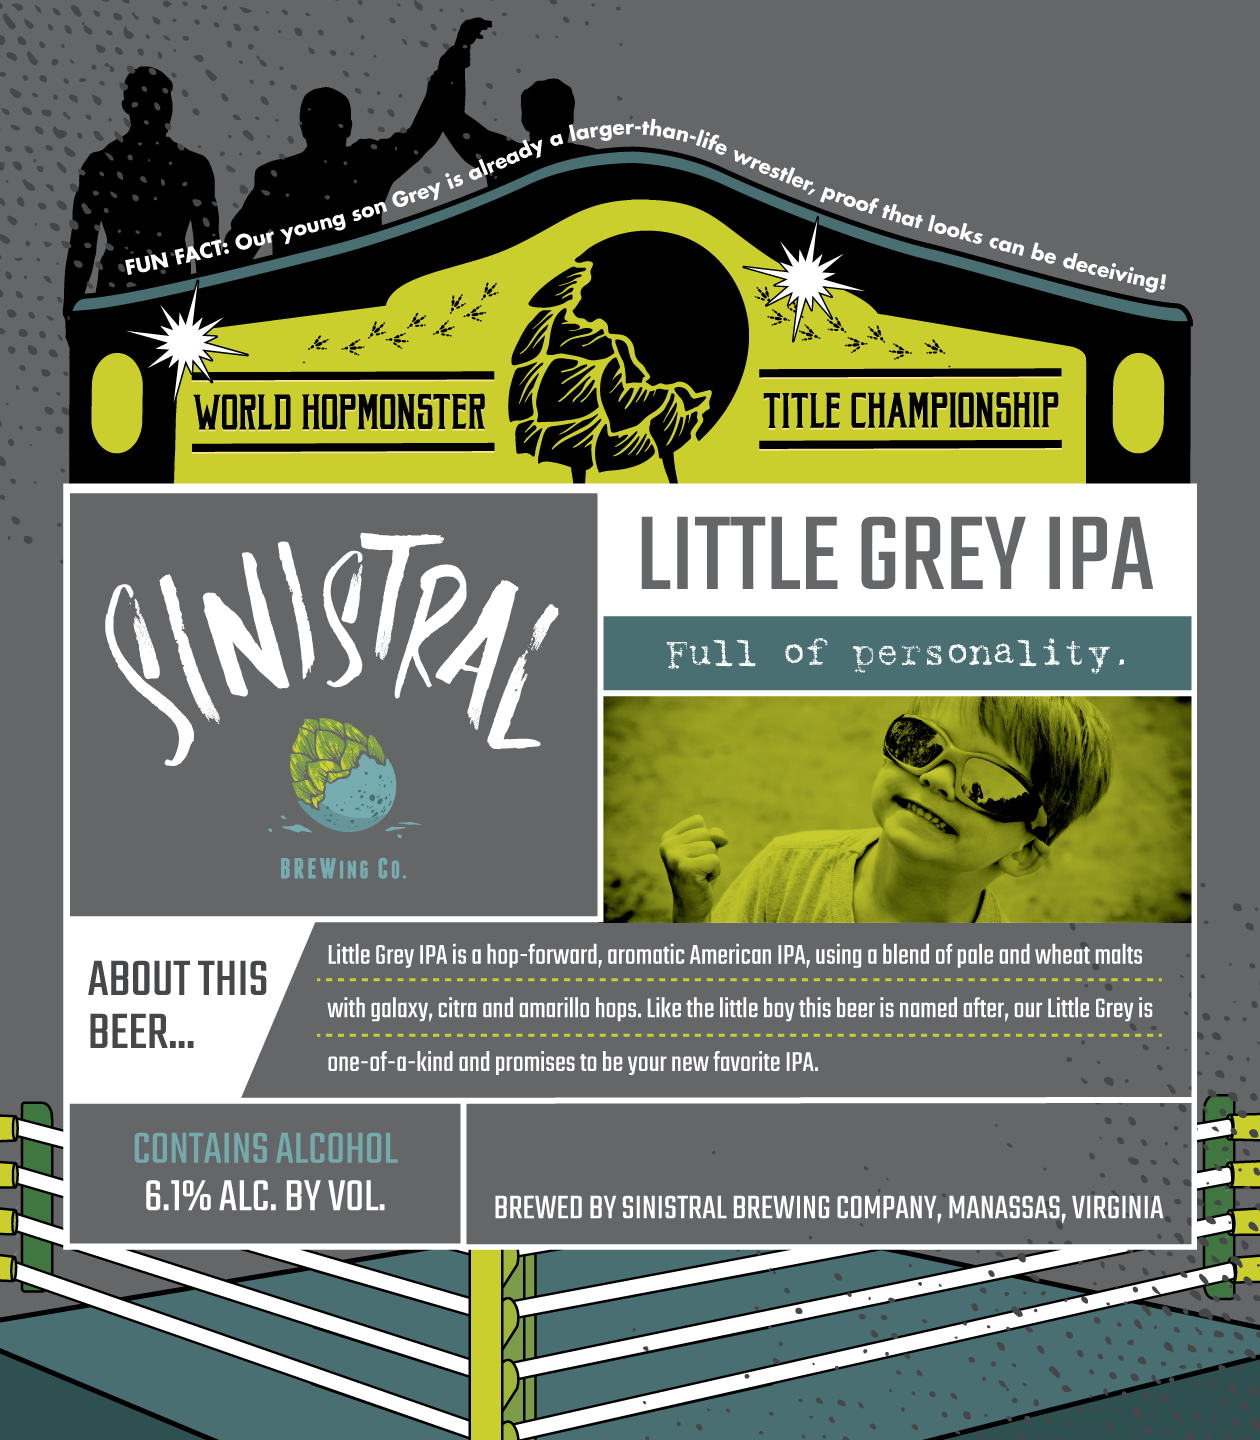 https://sinistralbrewingcompany.com/wp-content/uploads/2017/11/Sinistral-Little-Grey-IPA-Label.png